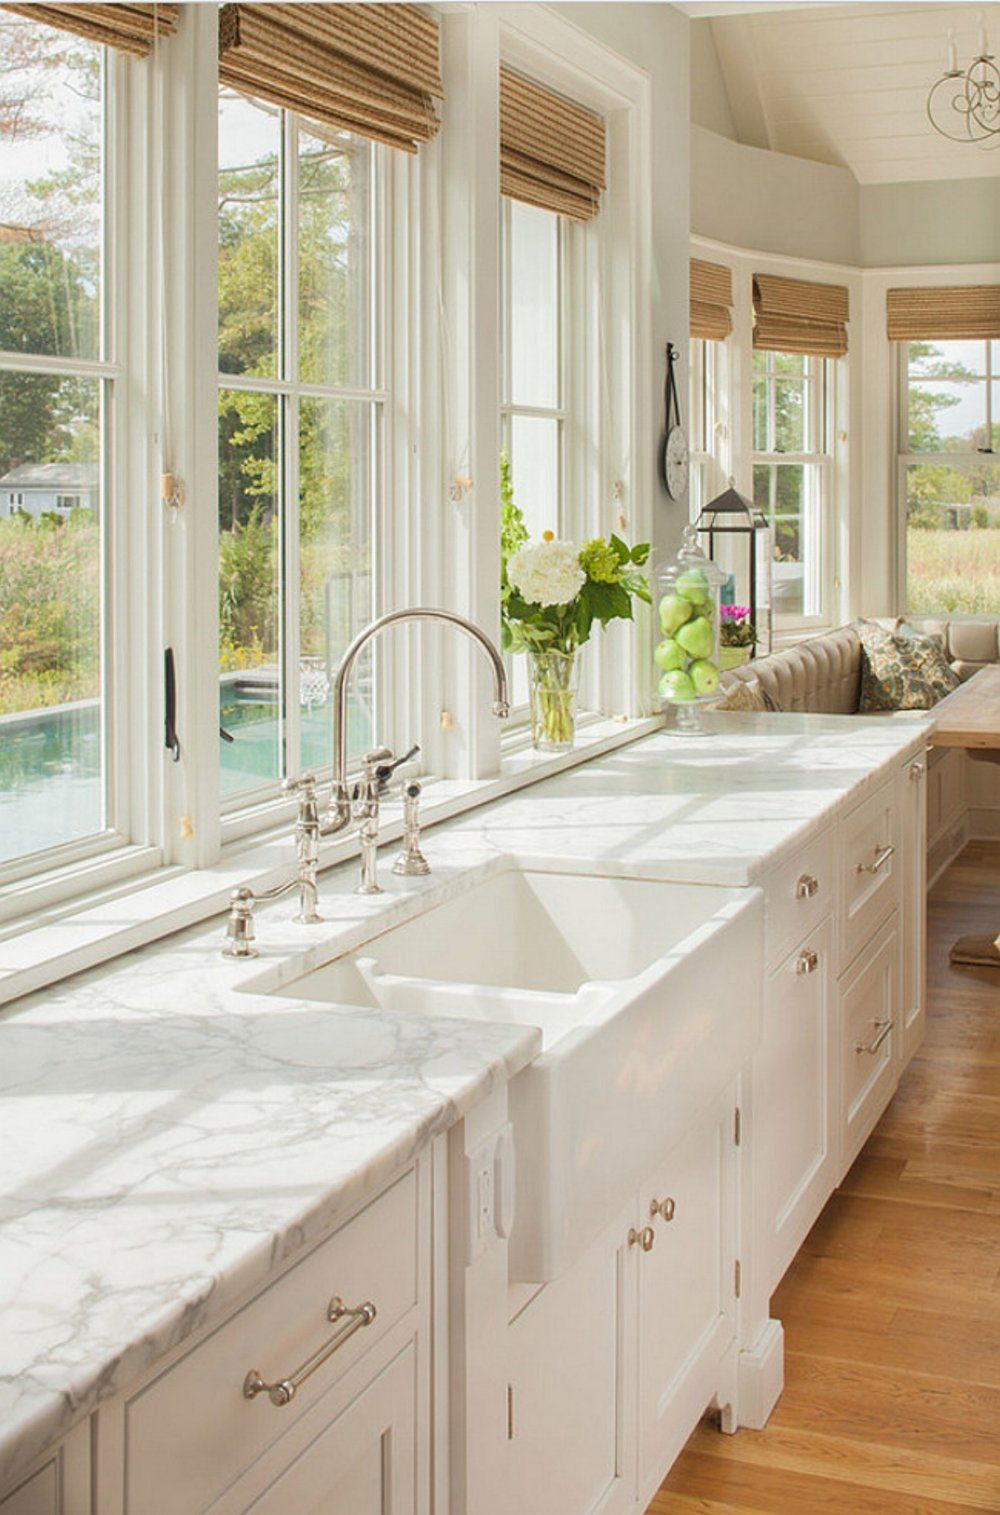 54 Exceptional Kitchen Designs | Fireclay sink, Sinks and Hardware